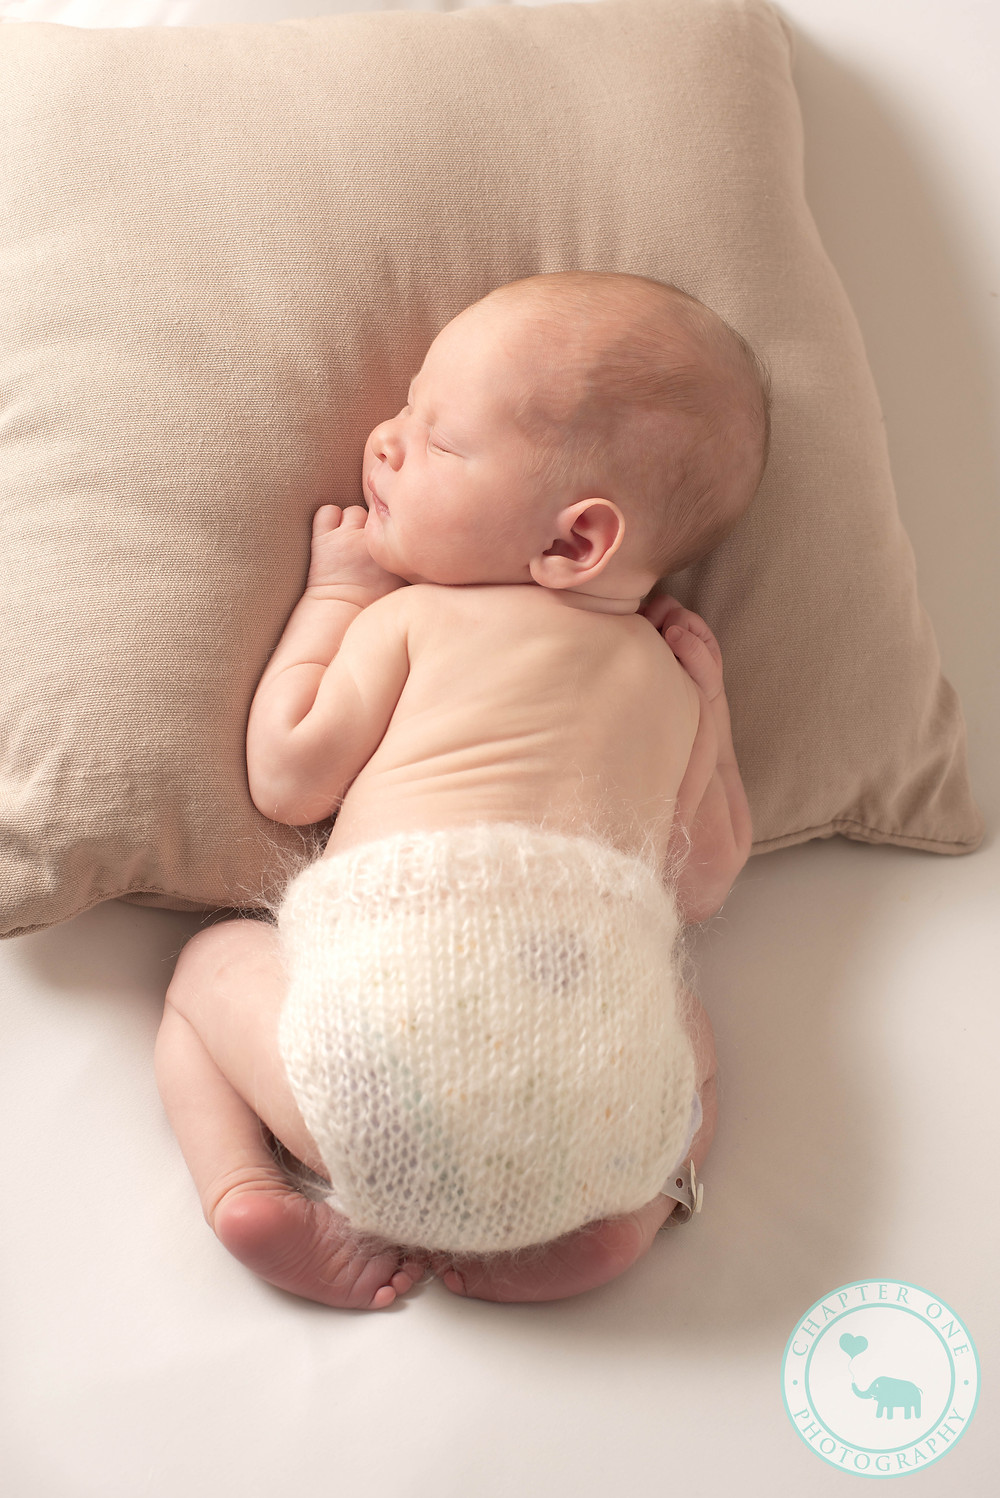 Newborn boy asleep on pillow